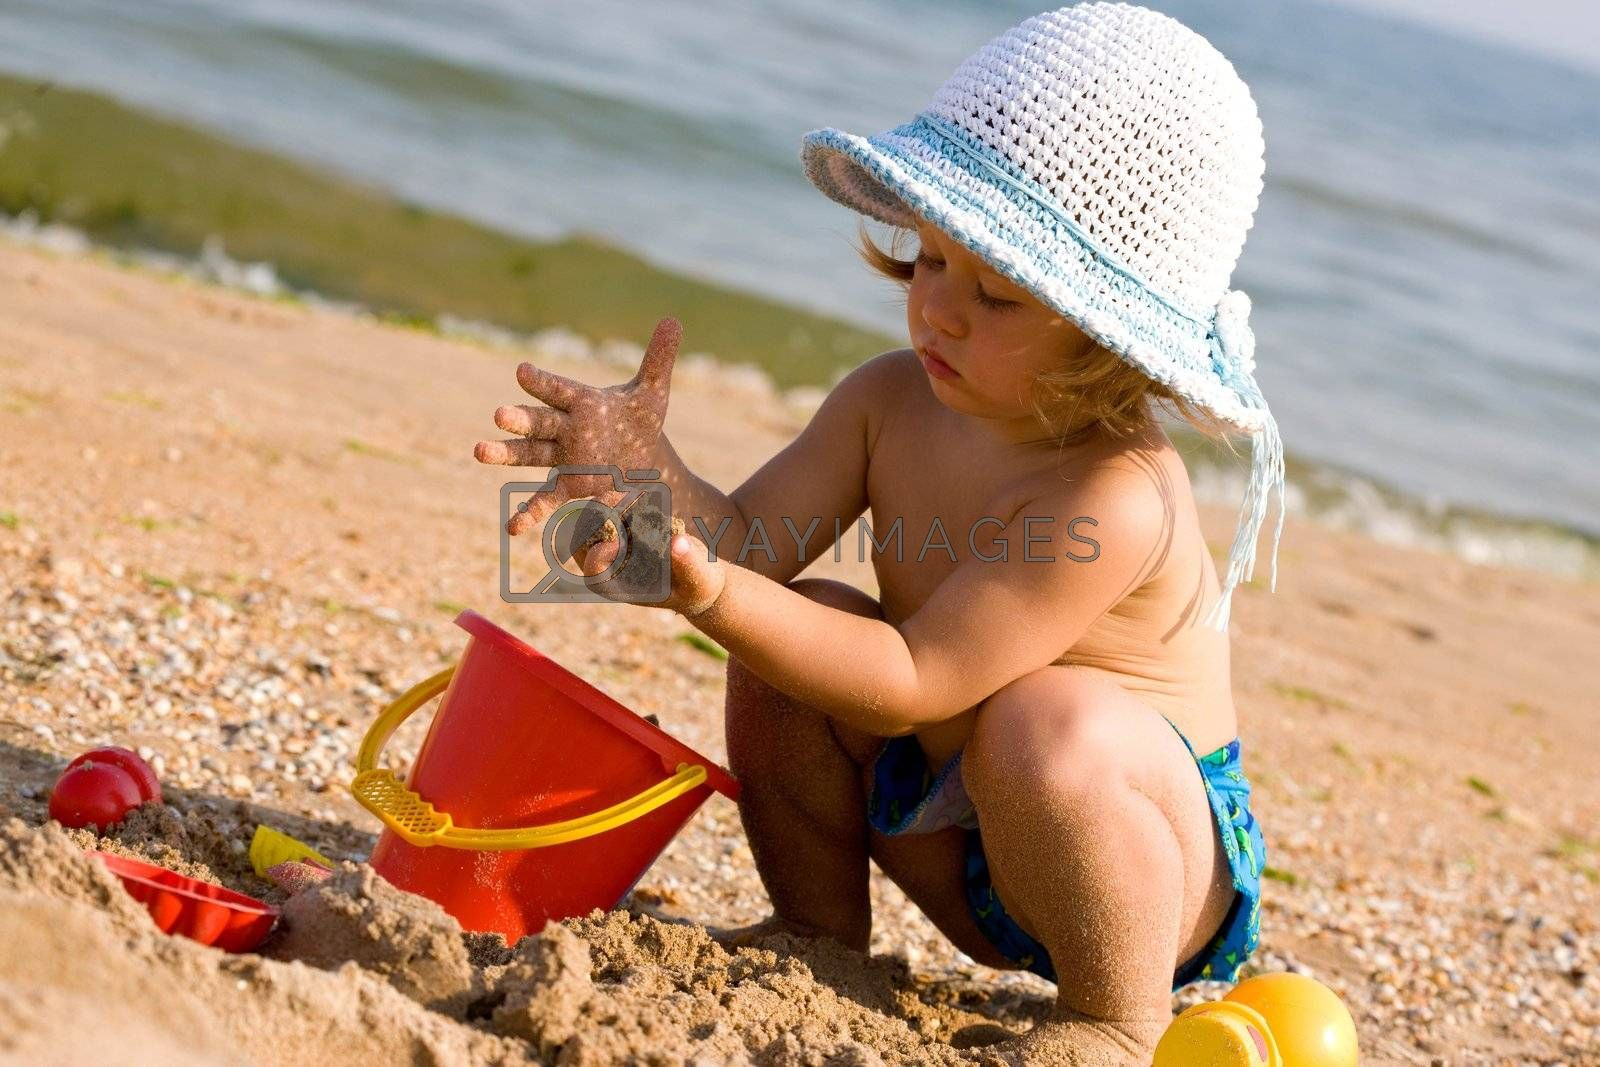 little girl in the bonnet plaing with sand, childhood